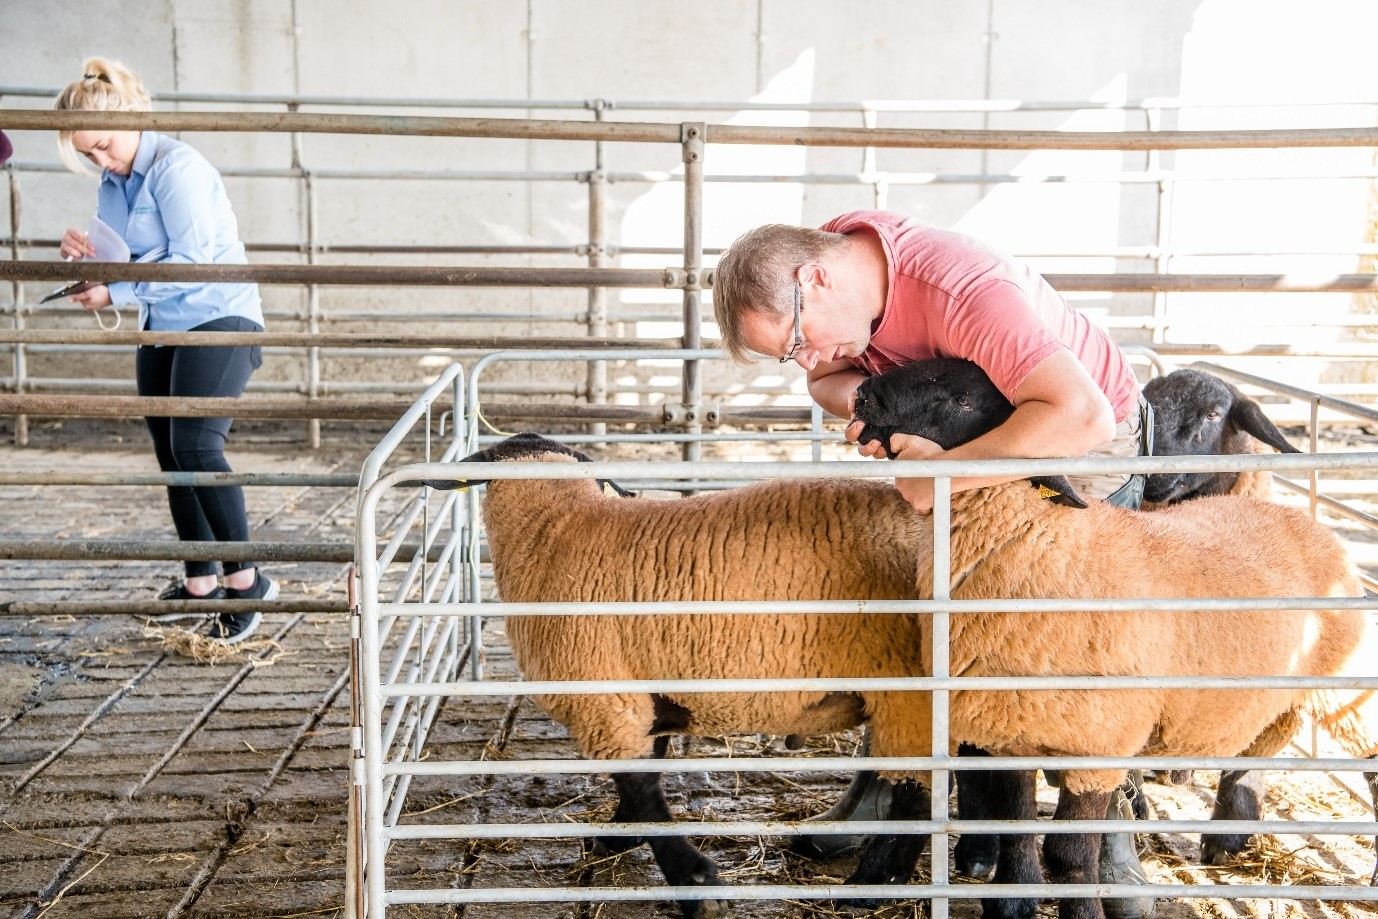 Genotype (DNA sample) your potential entries to Sheep Ireland's Elite €uroStar Multi-Breed Ram Sale 2021 by next Tues June 15th!